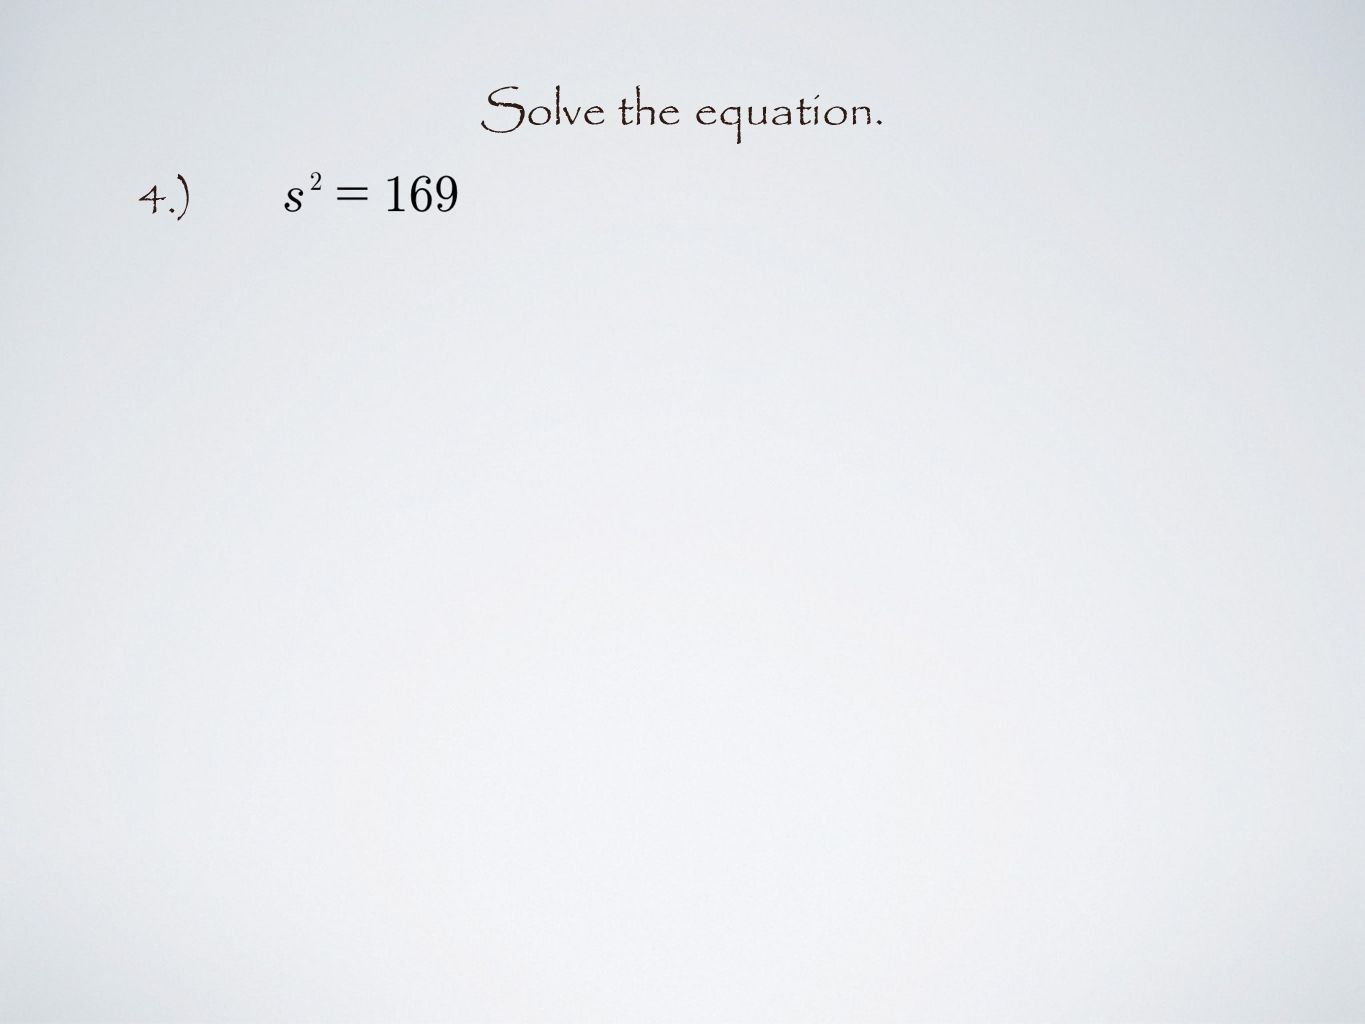 4.) Solve the equation.